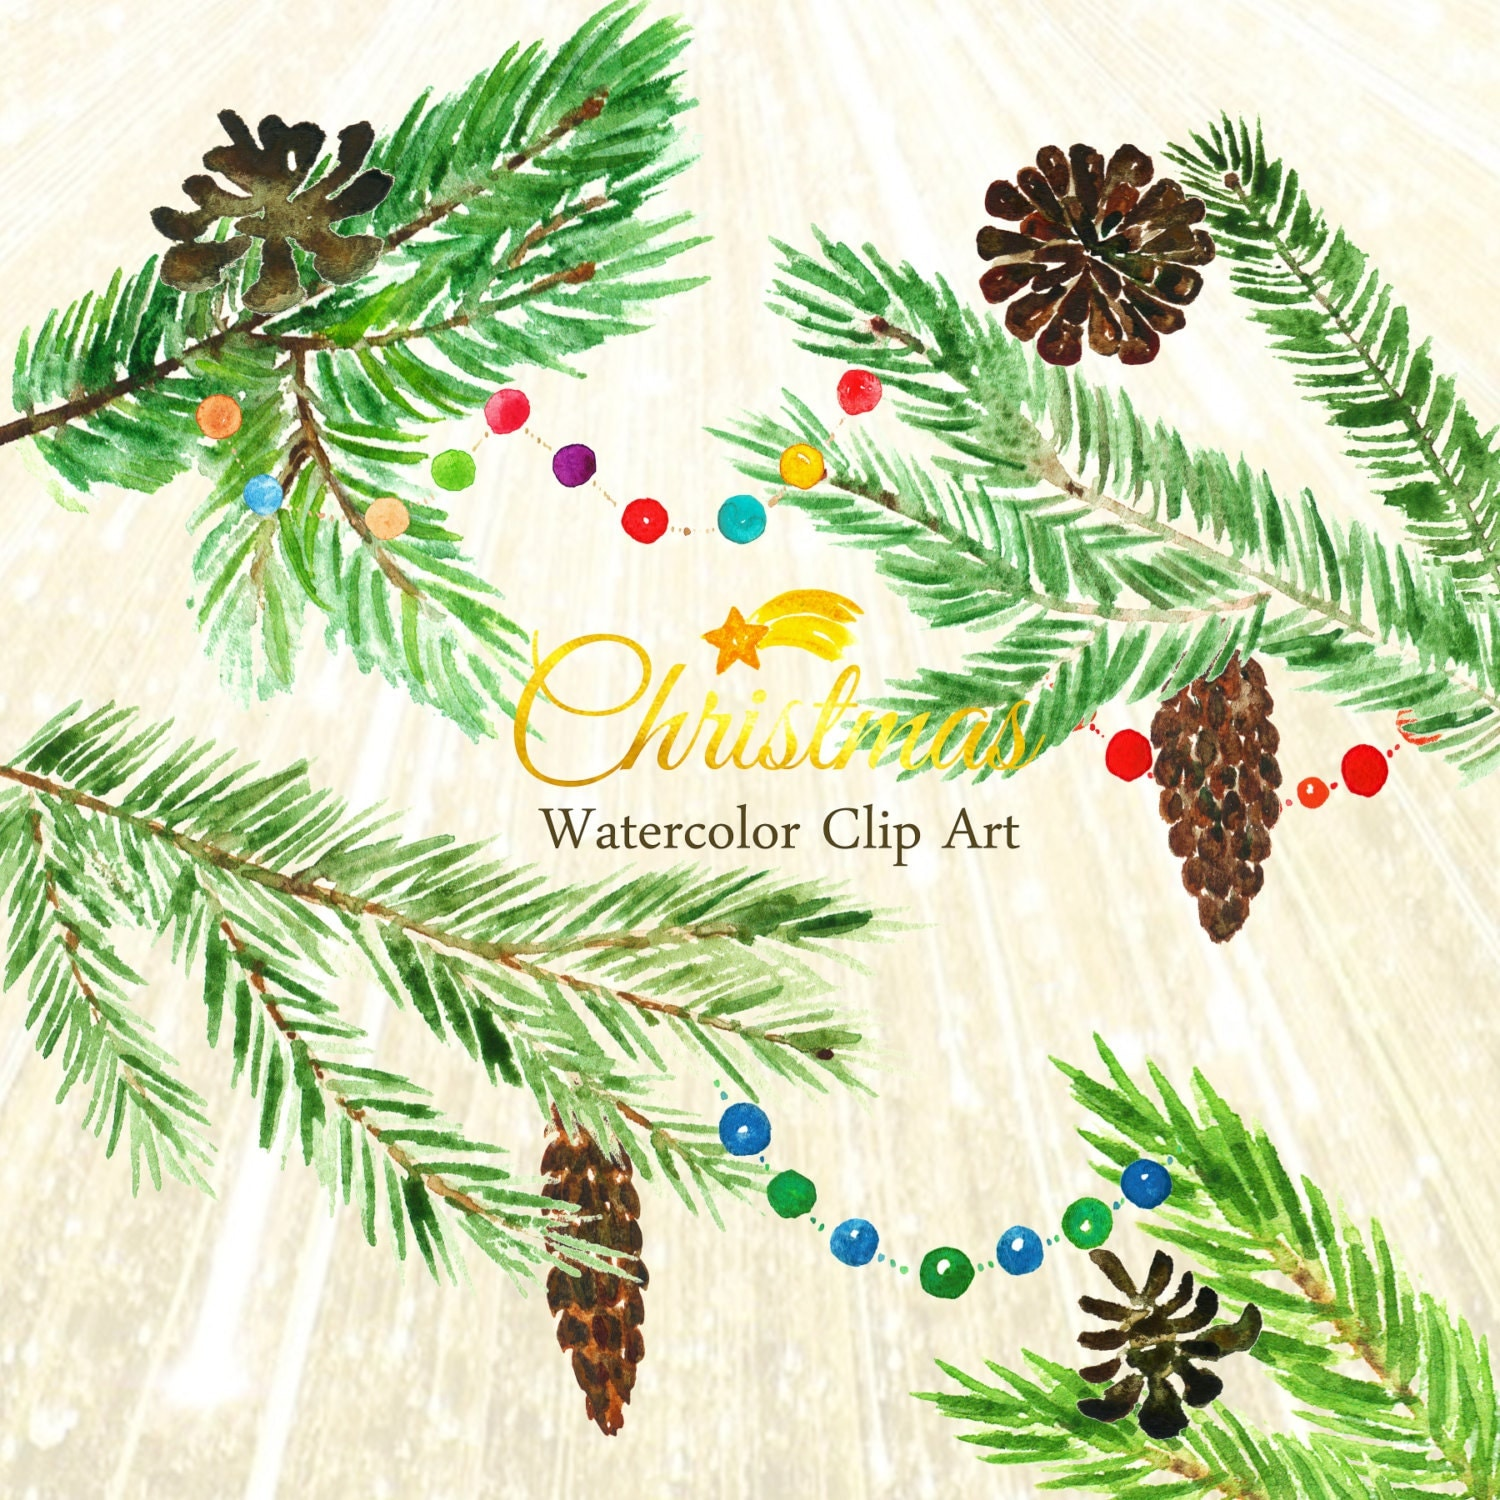 Watercolour Christmas Tree: Christmas Tree Watercolor Clip Art Hand Drawn. Winter